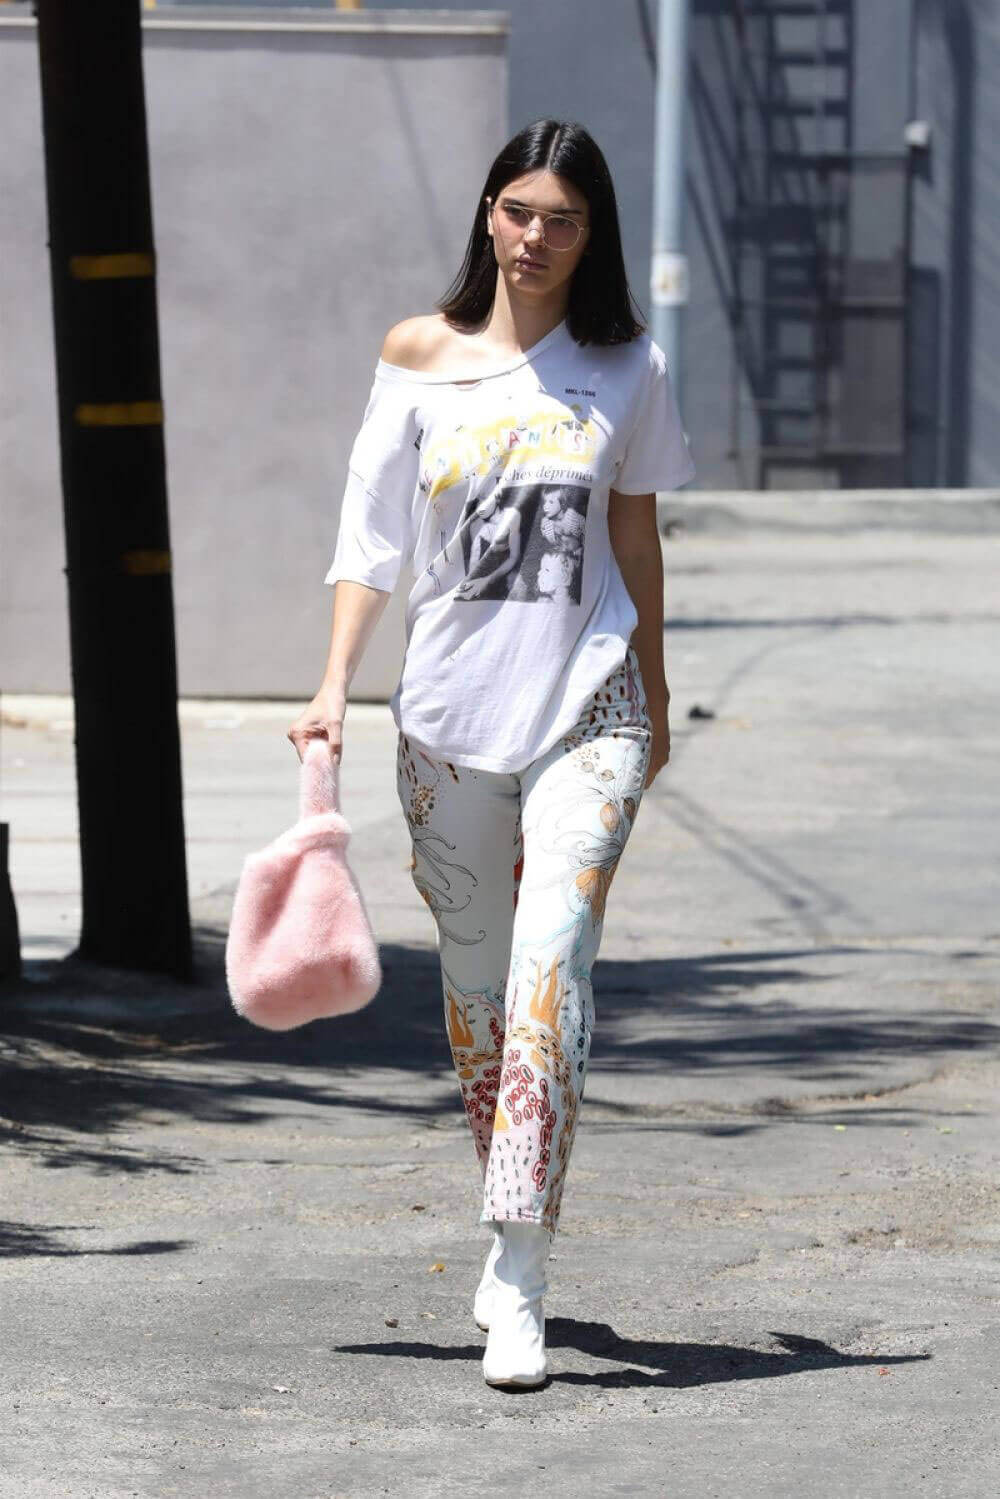 Kendall Jenner Out and About in West Hollywood Images - 07/22/2017